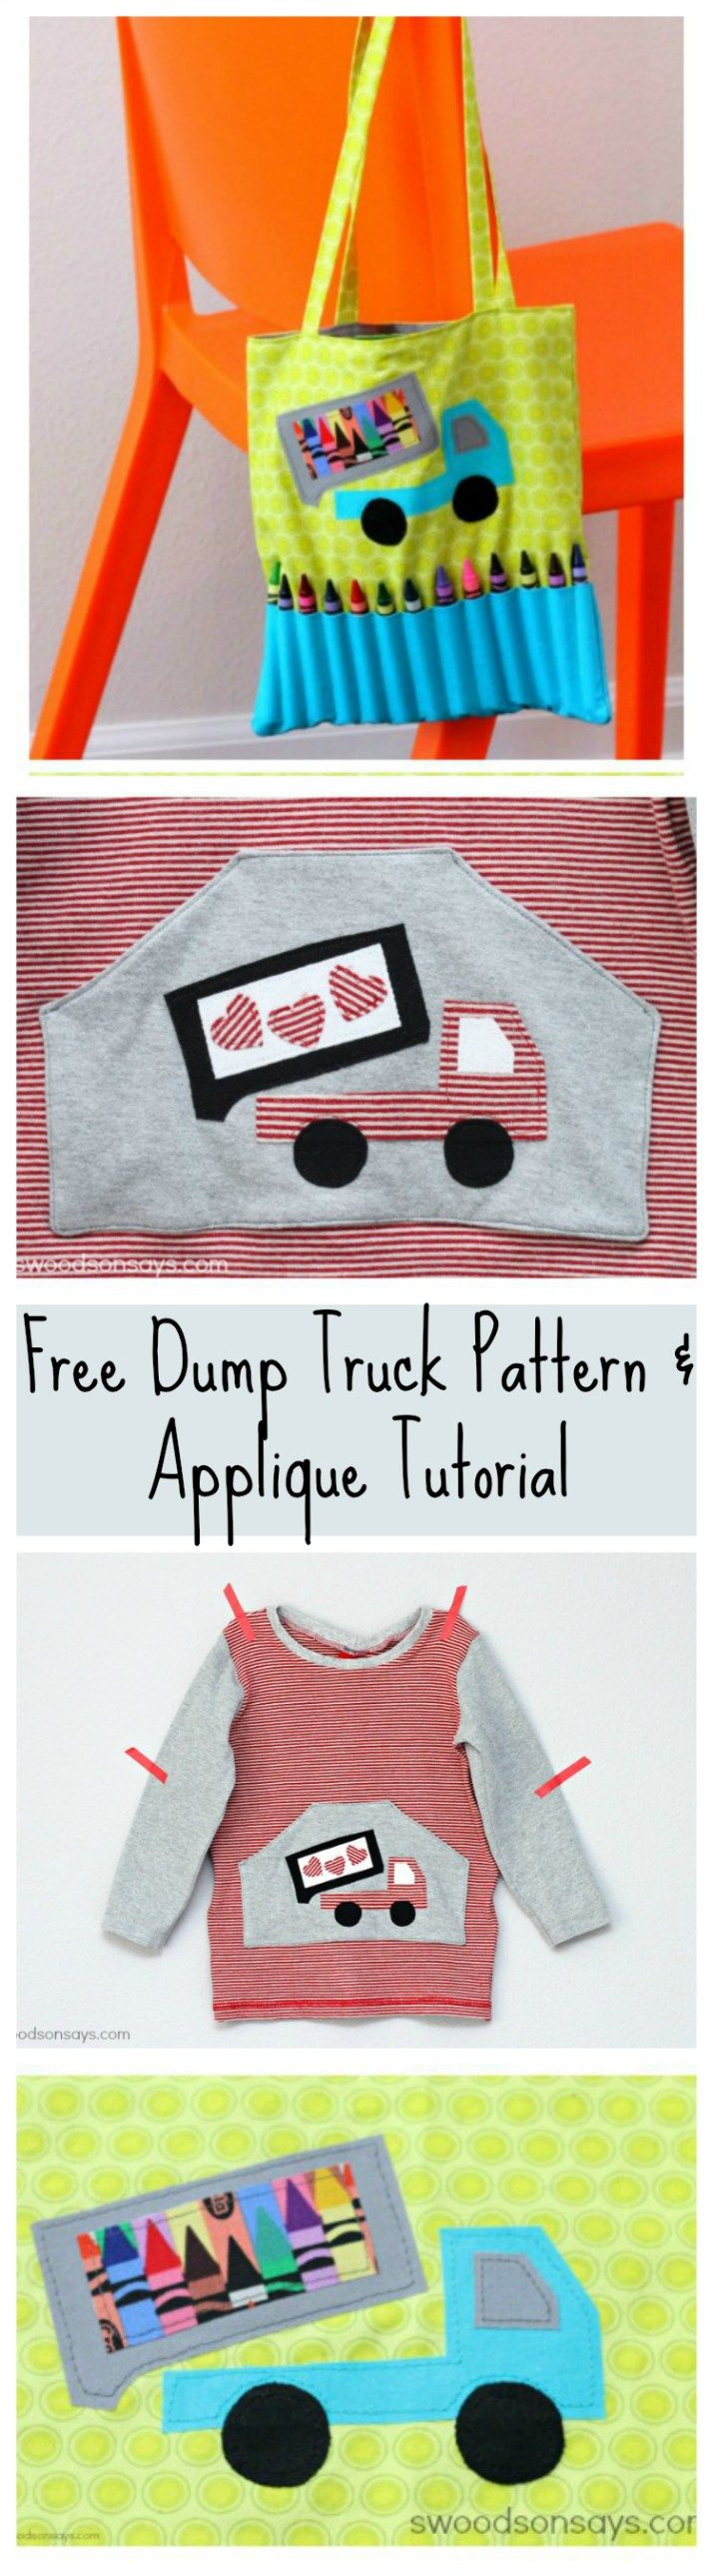 Free Dump Truck Applique